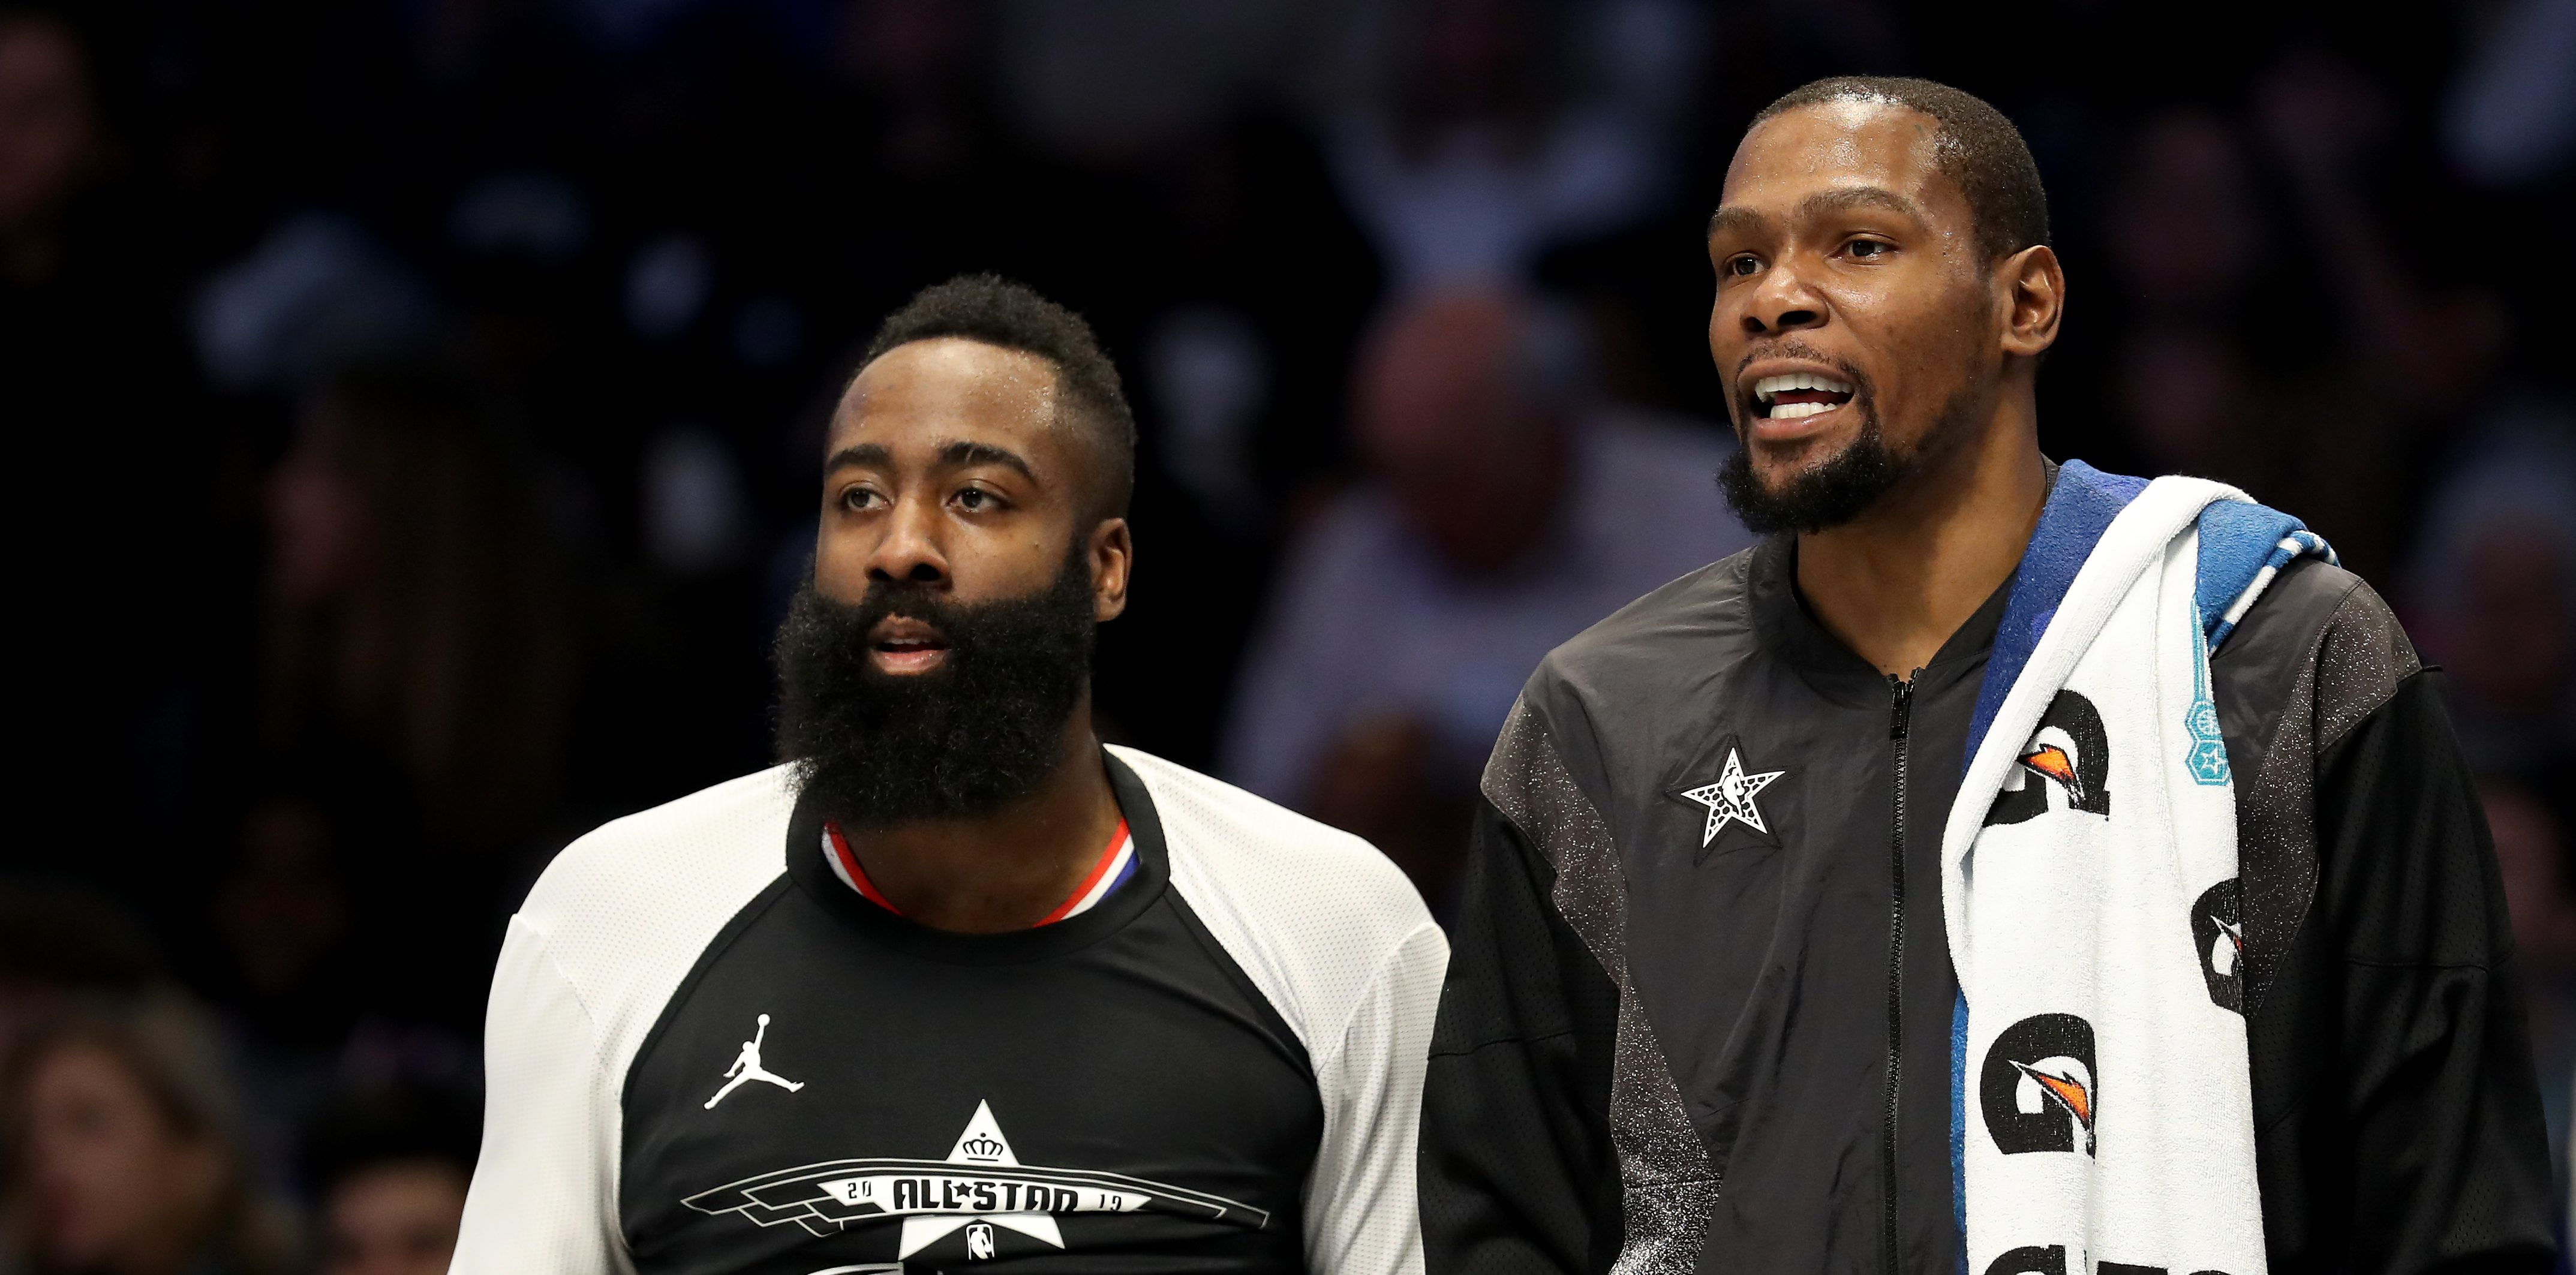 CHARLOTTE, NC - Feb. 17: James Harden, 13th-place Houston Rockets and team-mate Kevin Durant # 35 from Golden State War. Riers and Team LeBron watch from the bench during the NBA All-Star game as part of the 2019 NBA All-Star Weekend at Spectrum Center on February 17, 2019 in Charlotte, North Carolina. Note to users: User expressly acknowledges and agrees that by downloading and / or using this photo, user agrees to the terms and conditions of the Getty Images license agreement.